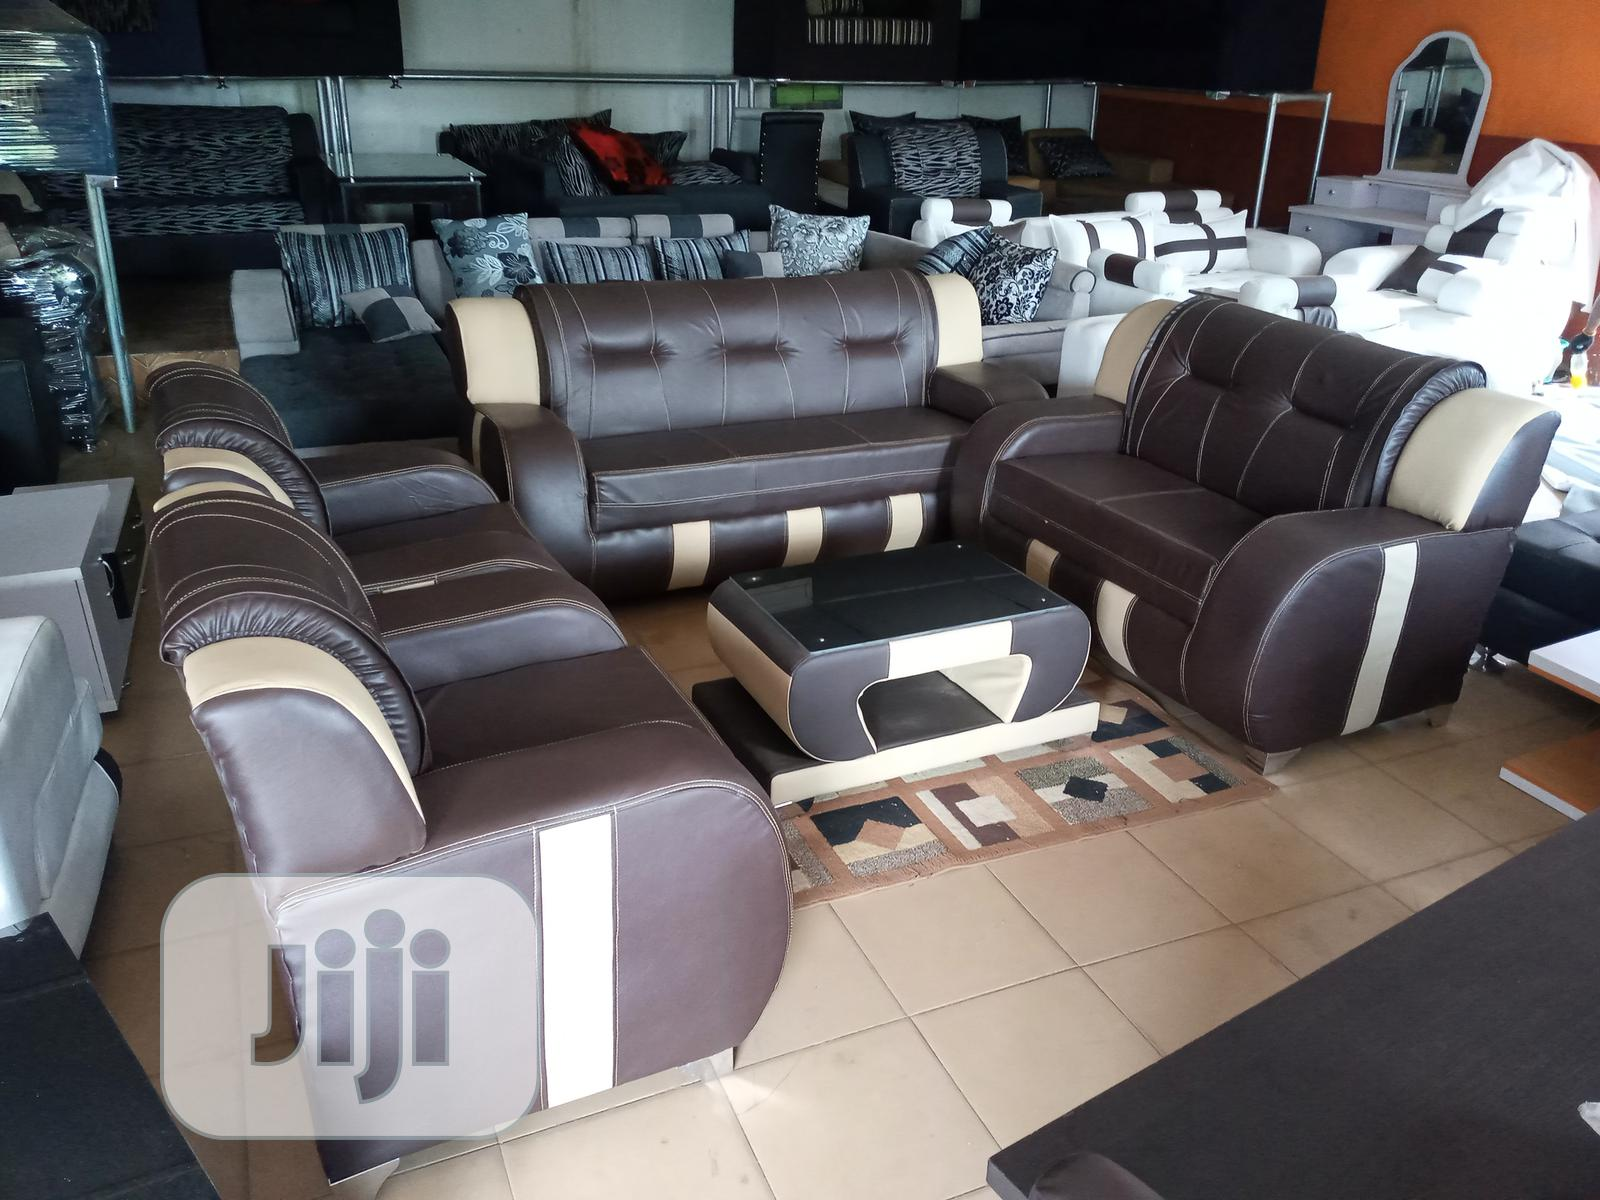 Sofa Chair Of 7 Seaters With Centre Table - Leather Couch